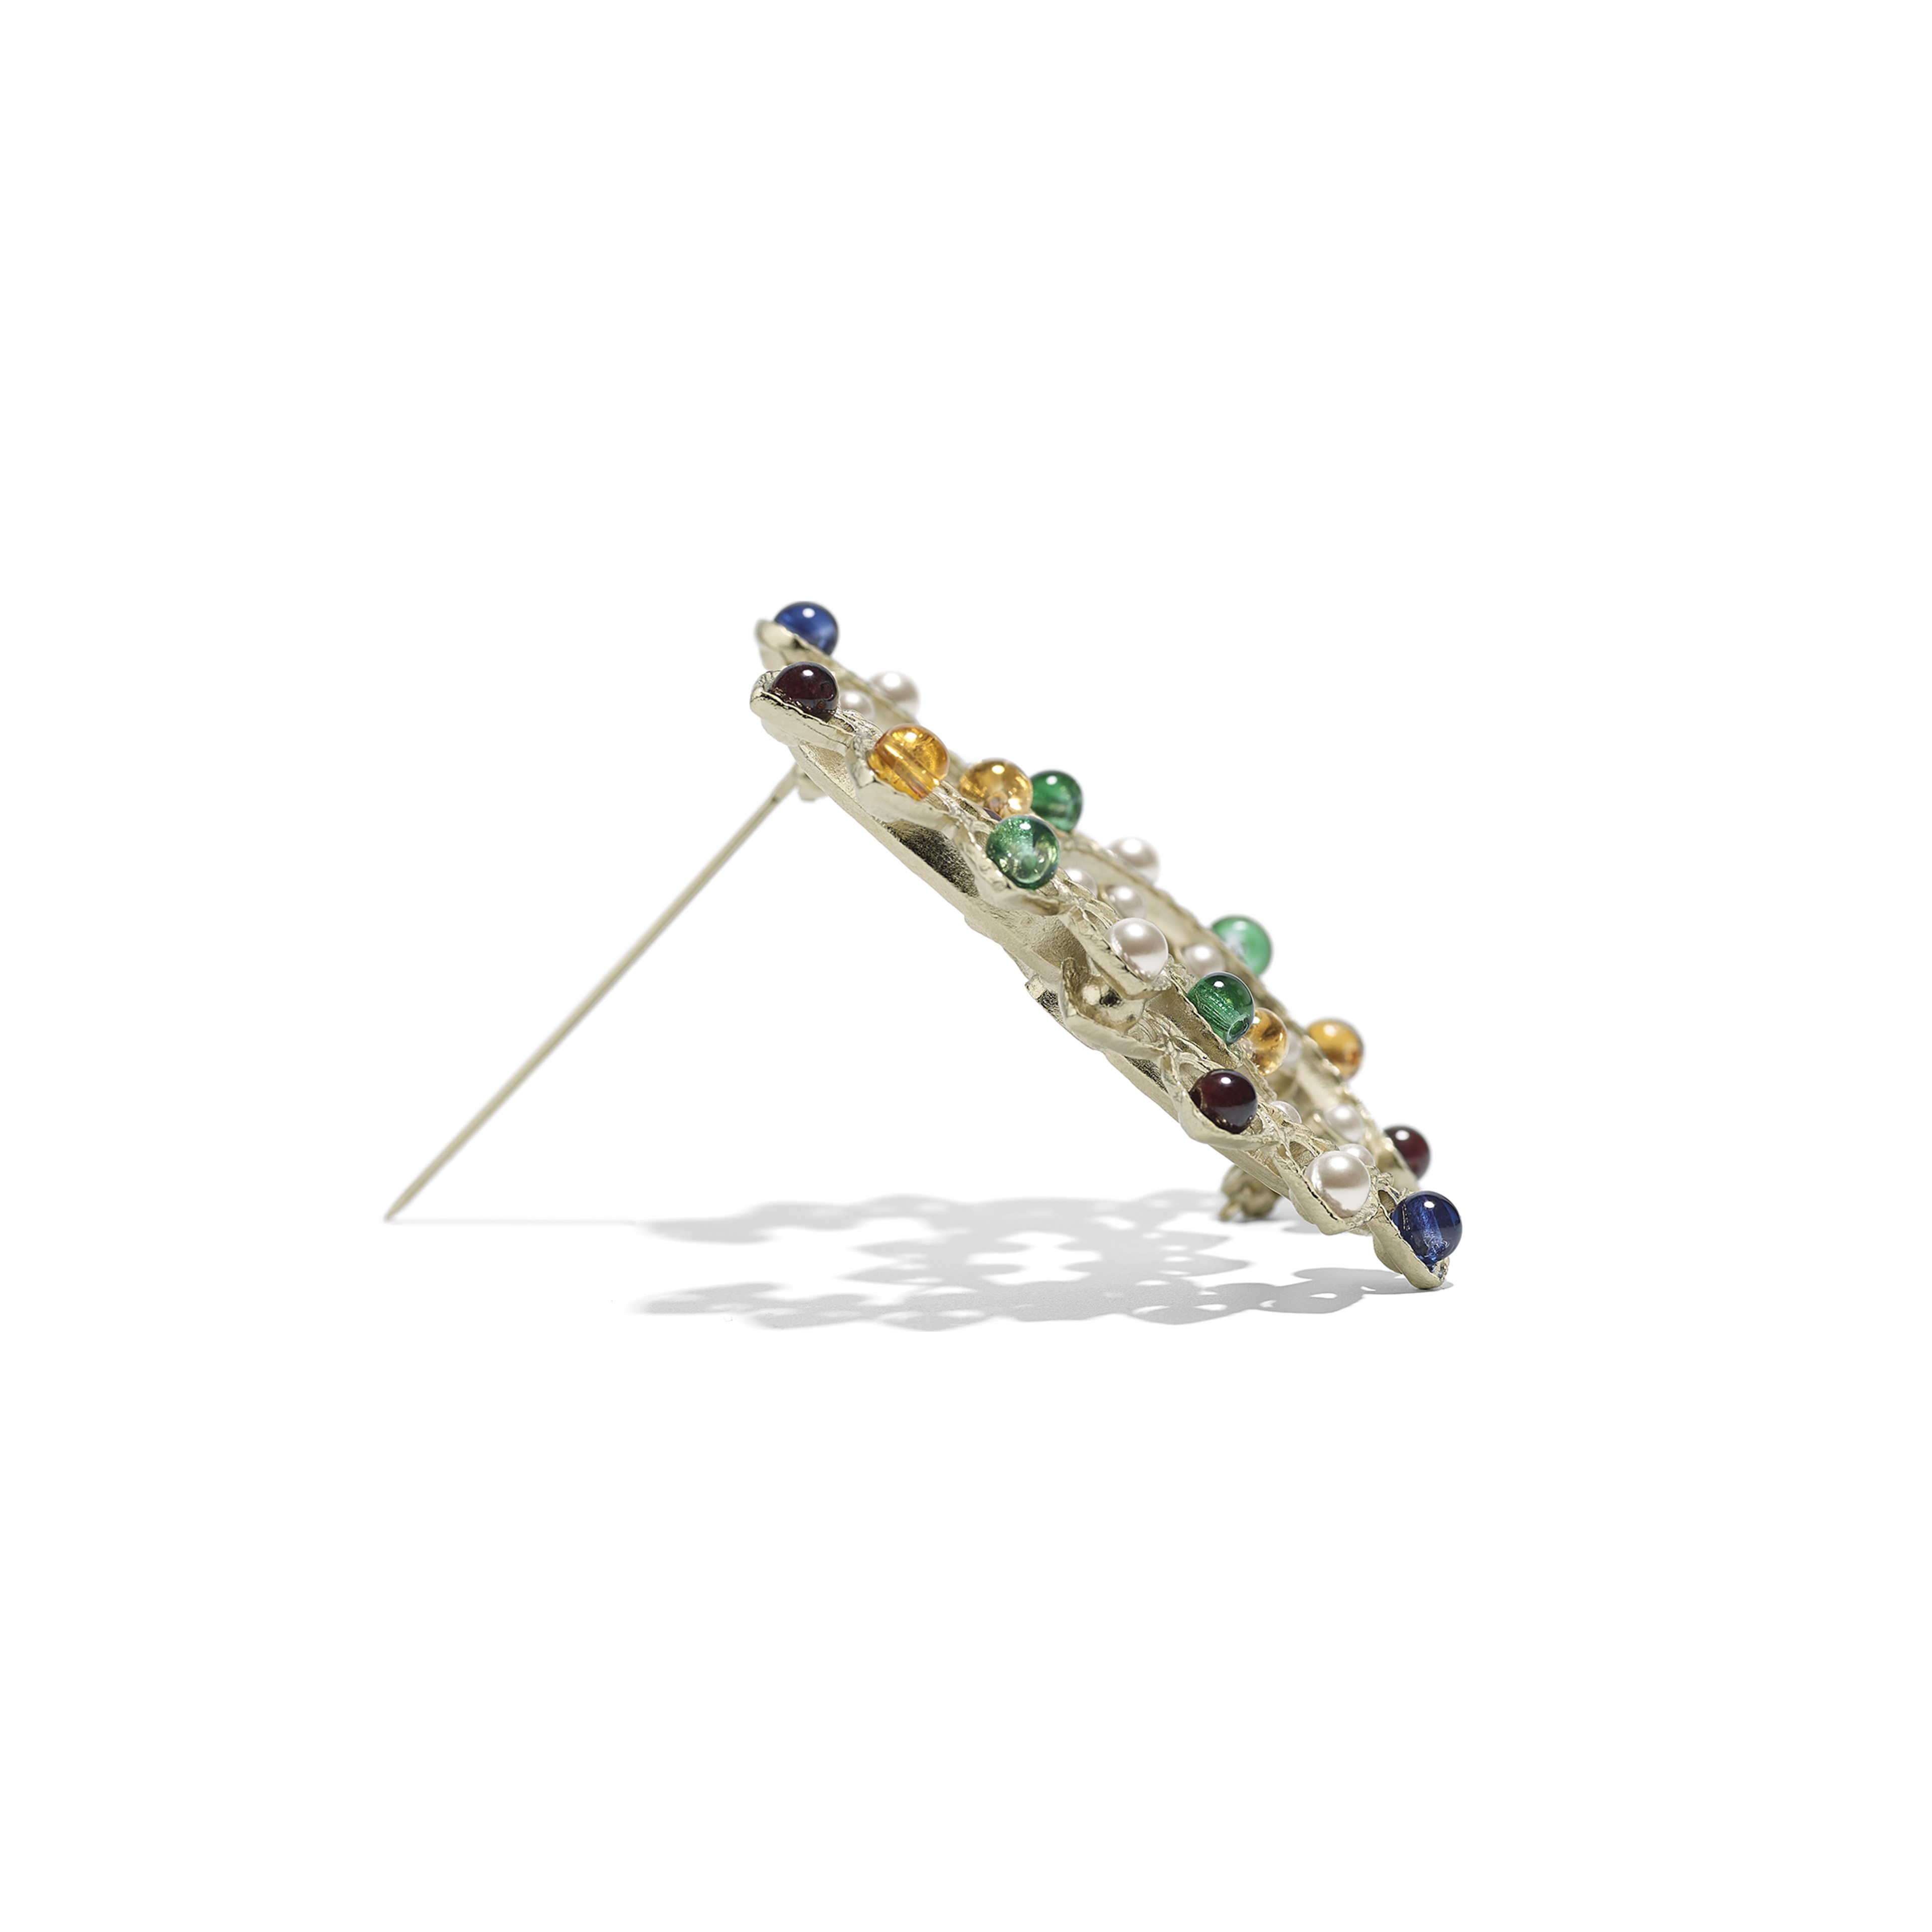 Brooch - Gold, Pearly White & Multicolor - Metal, Natural Stones & Glass Pearls - Alternative view - see full sized version